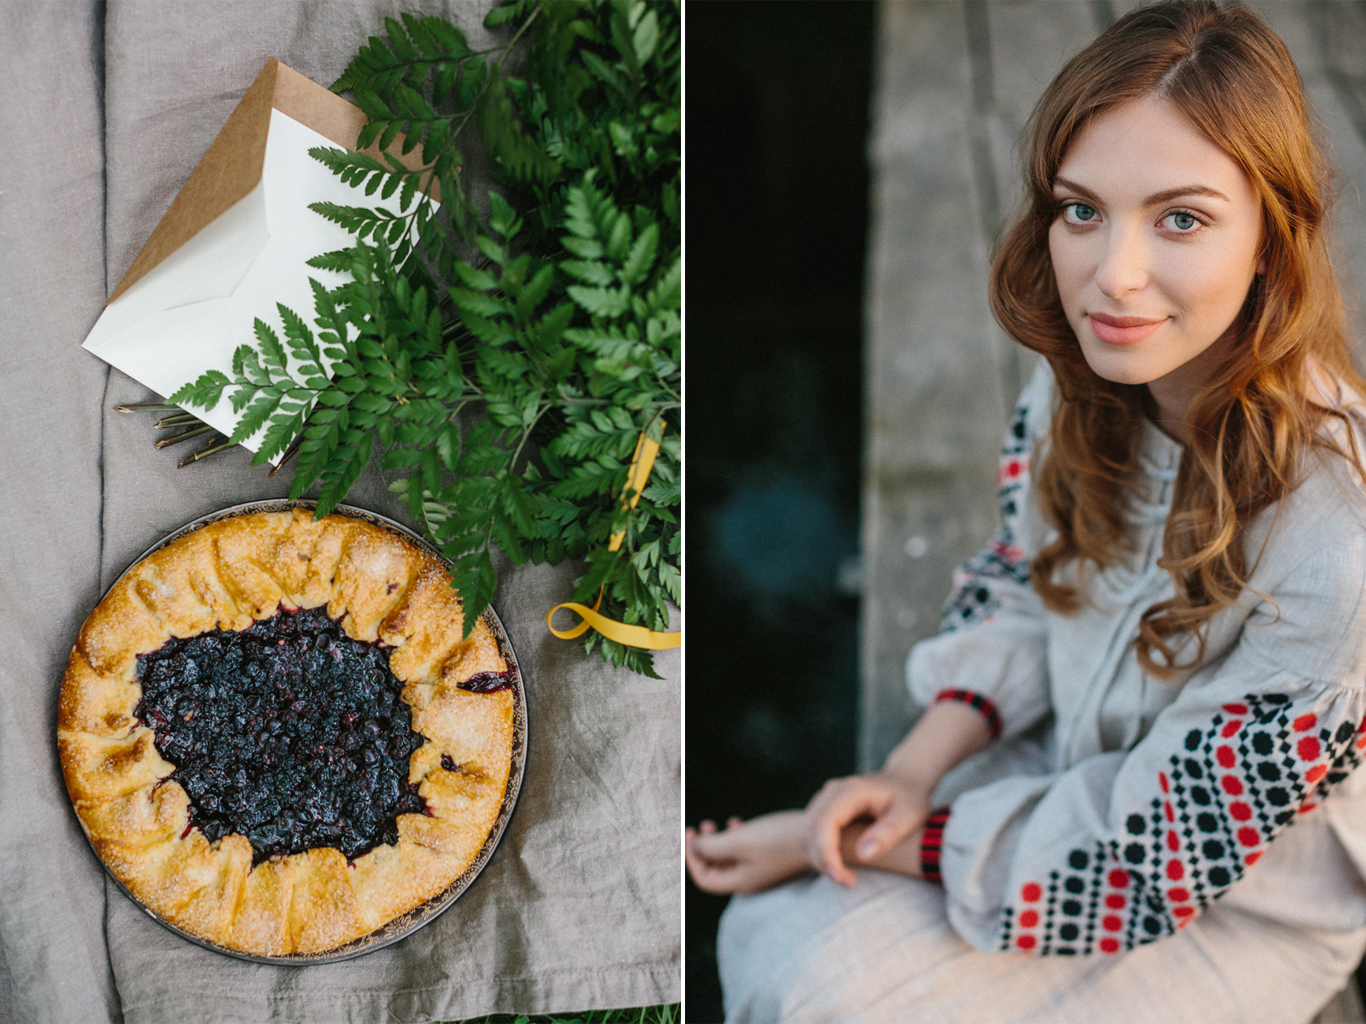 Kupava-Apple-Pie-Weddings-Polina-Illchenko-11